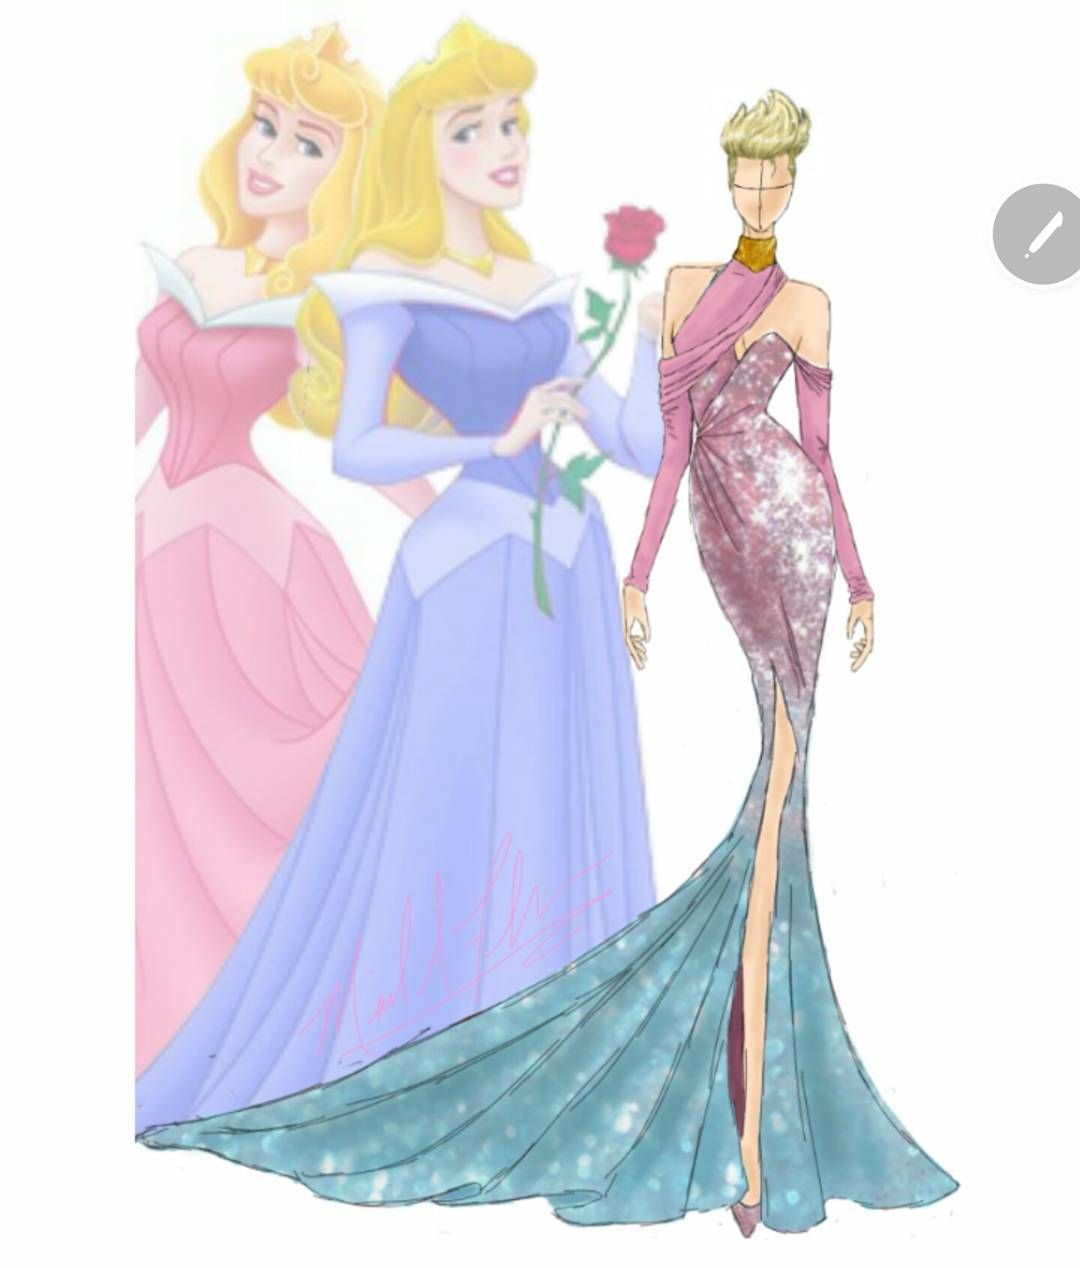 Fashion designer creates Disney Princess-inspired gown collection ...